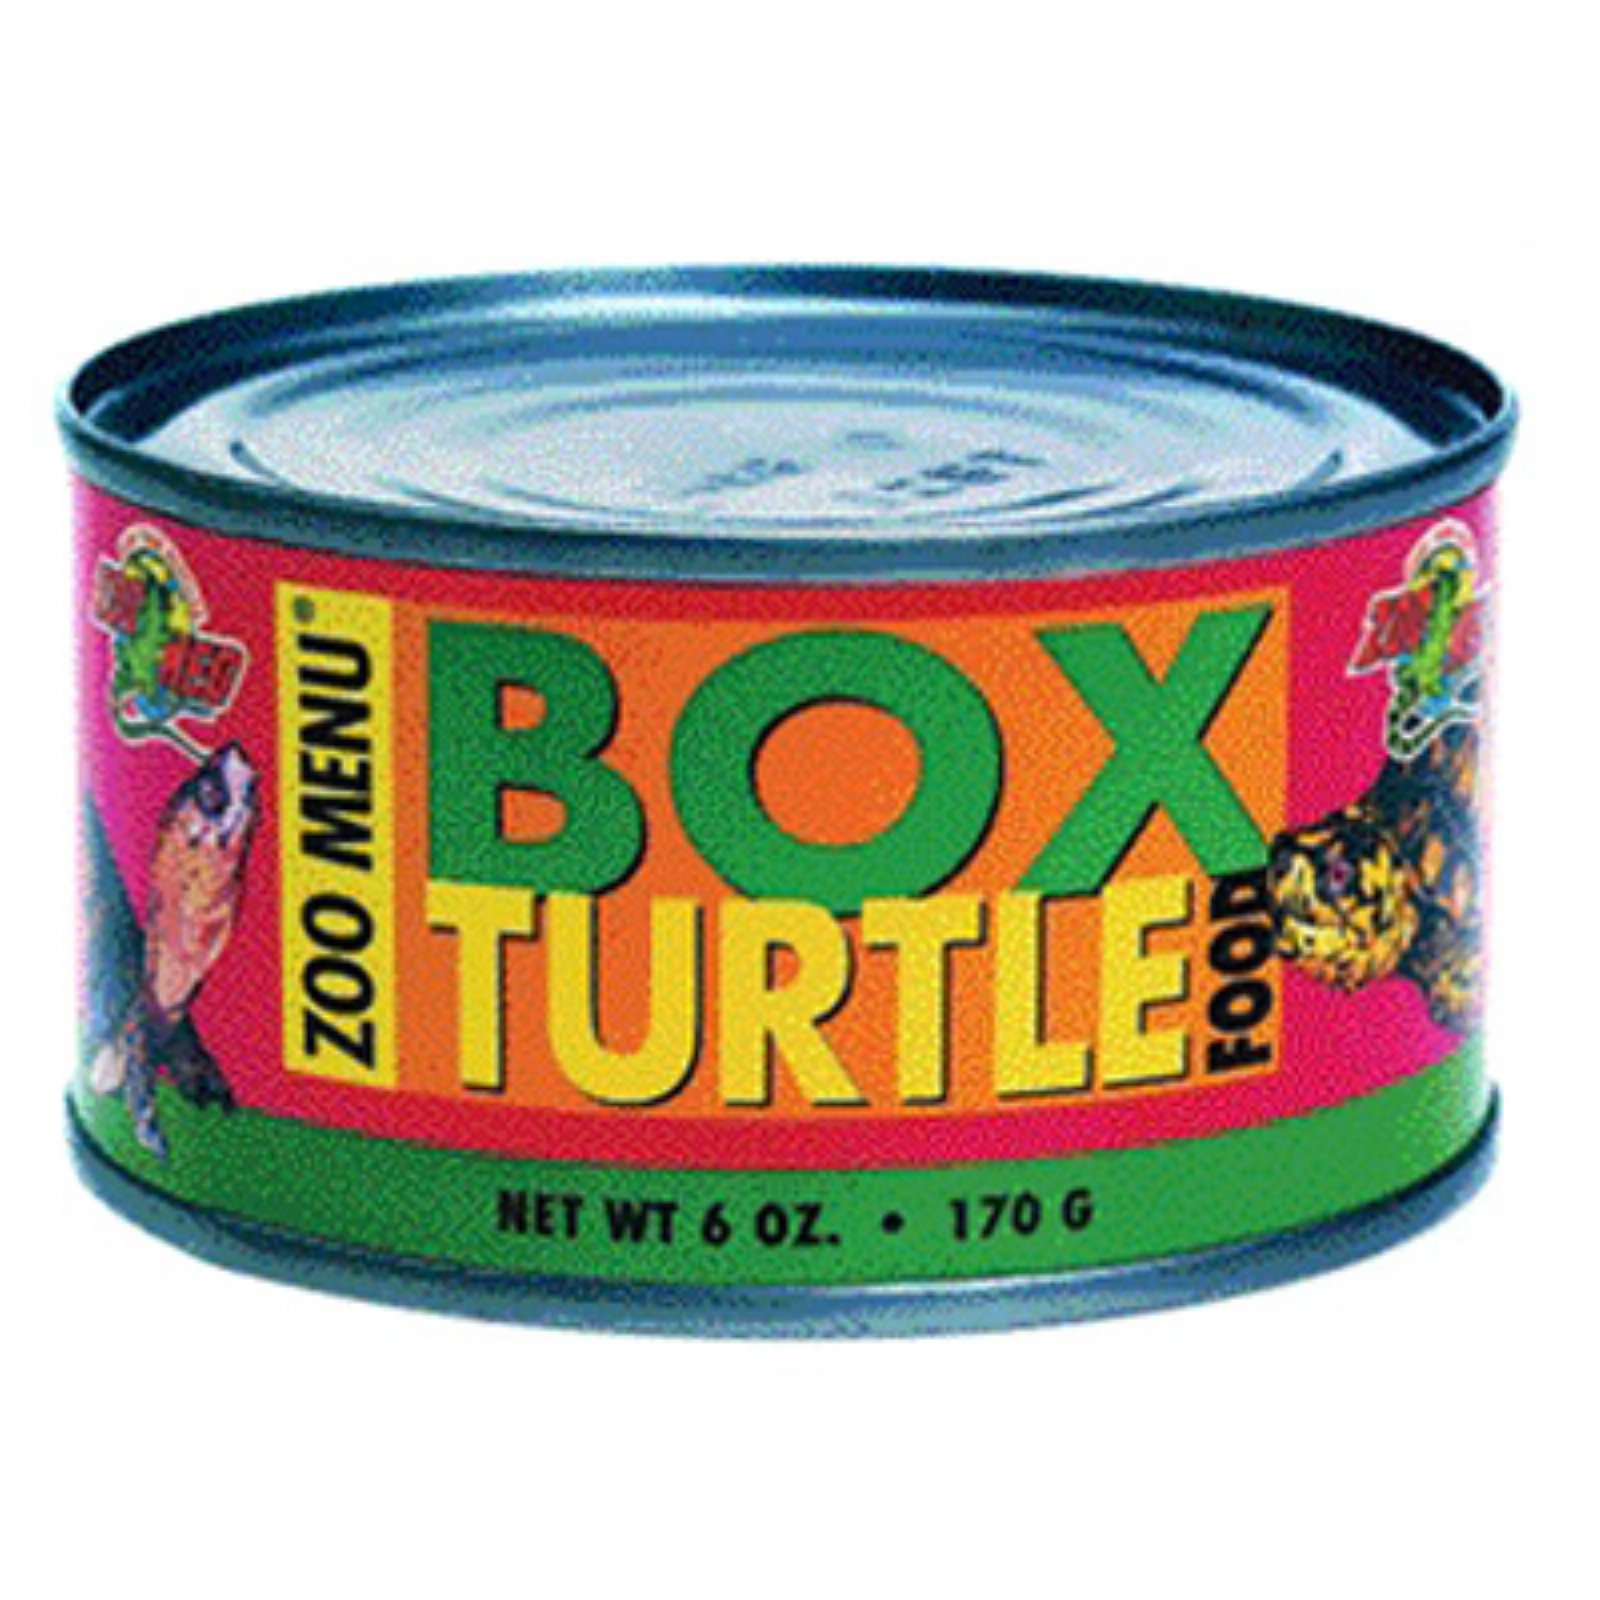 Zoo Med Box Turtle Food Canned Food, 6 oz